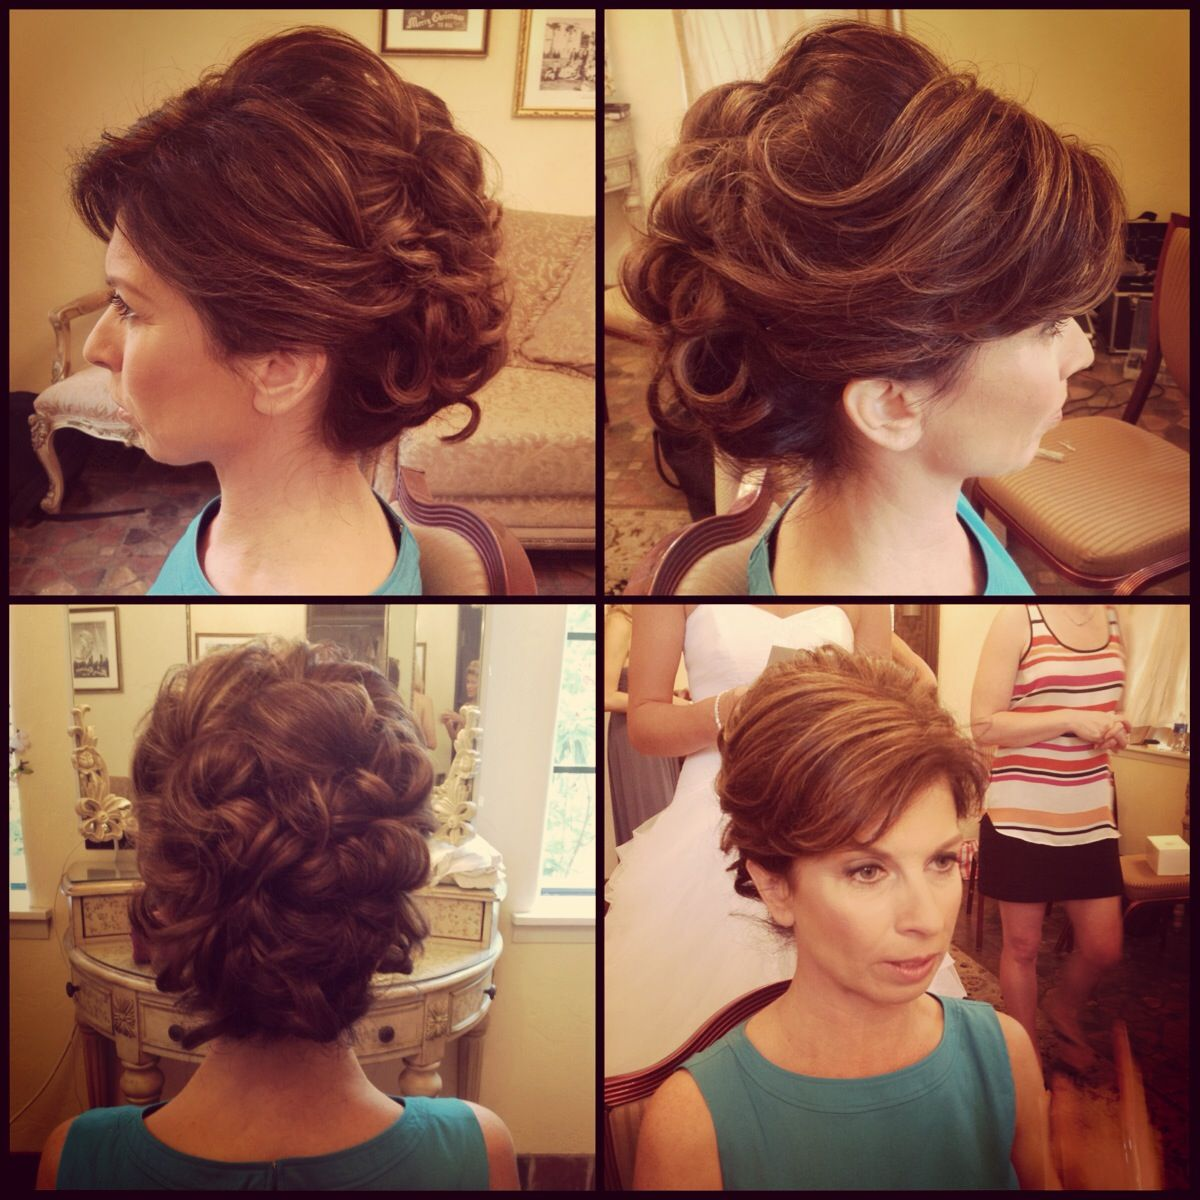 Mom Wedding Hairstyles: Groom Hair Styles, Short